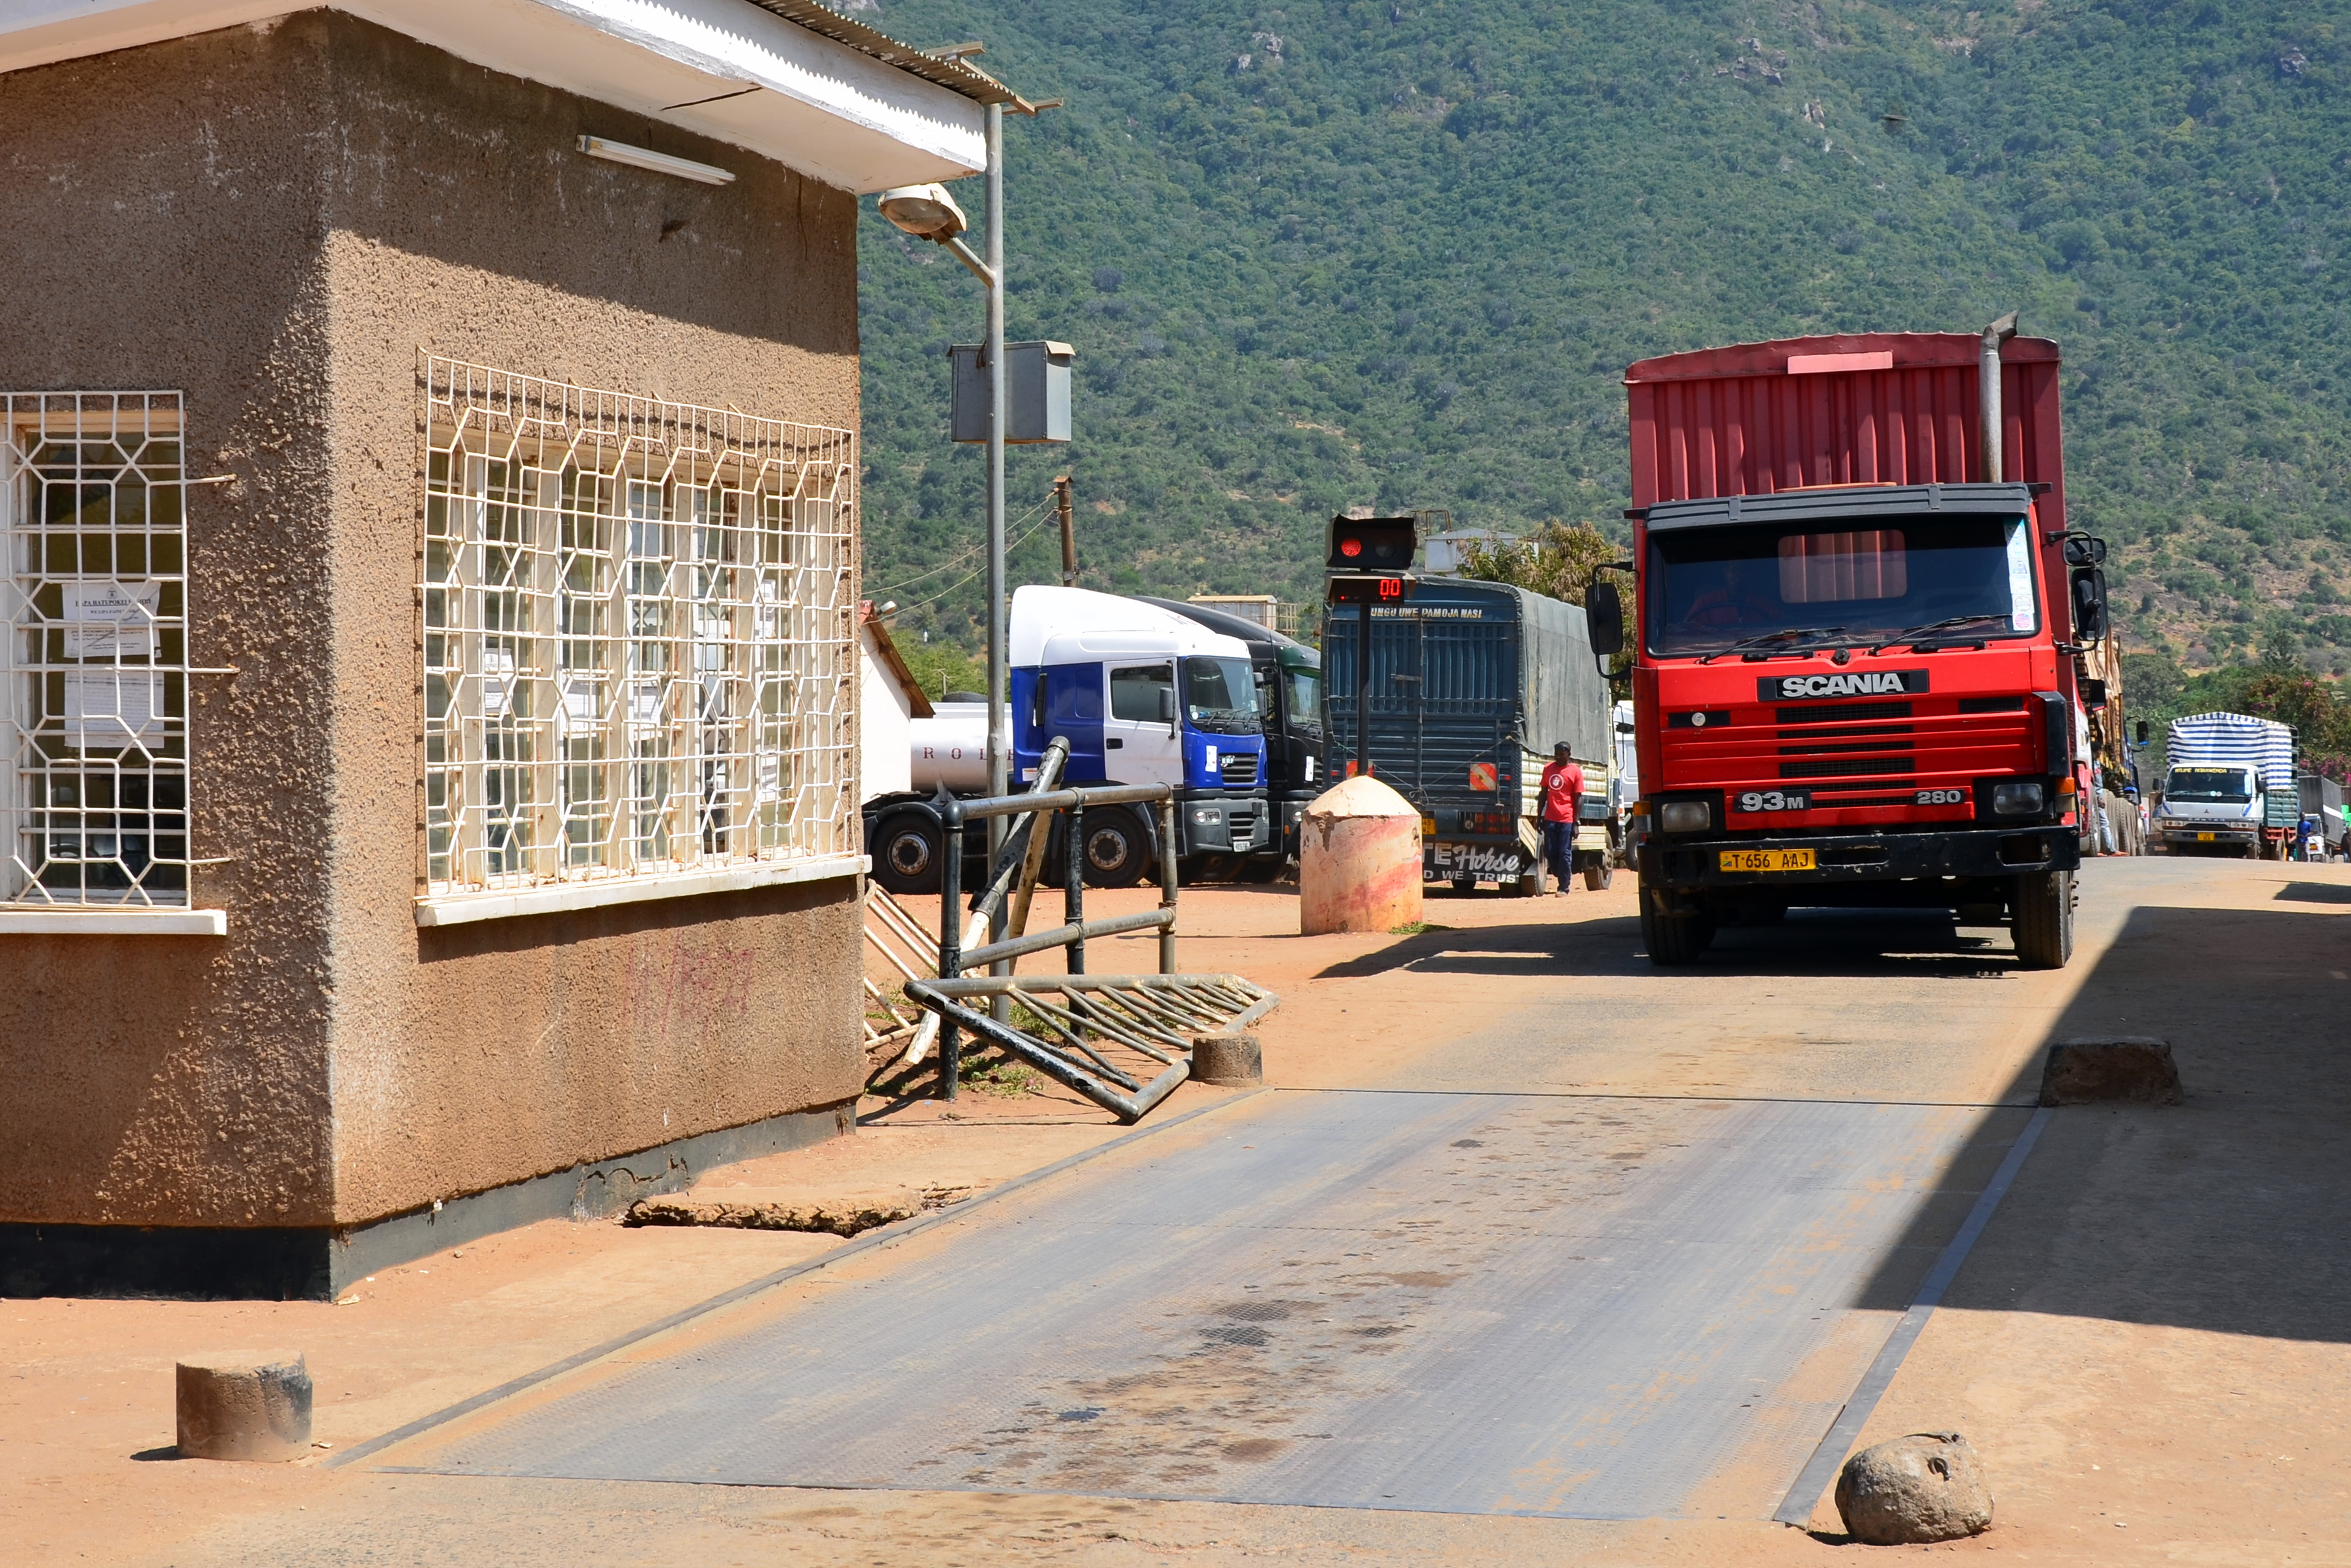 A truck in Tanzania drives onto a truck scale